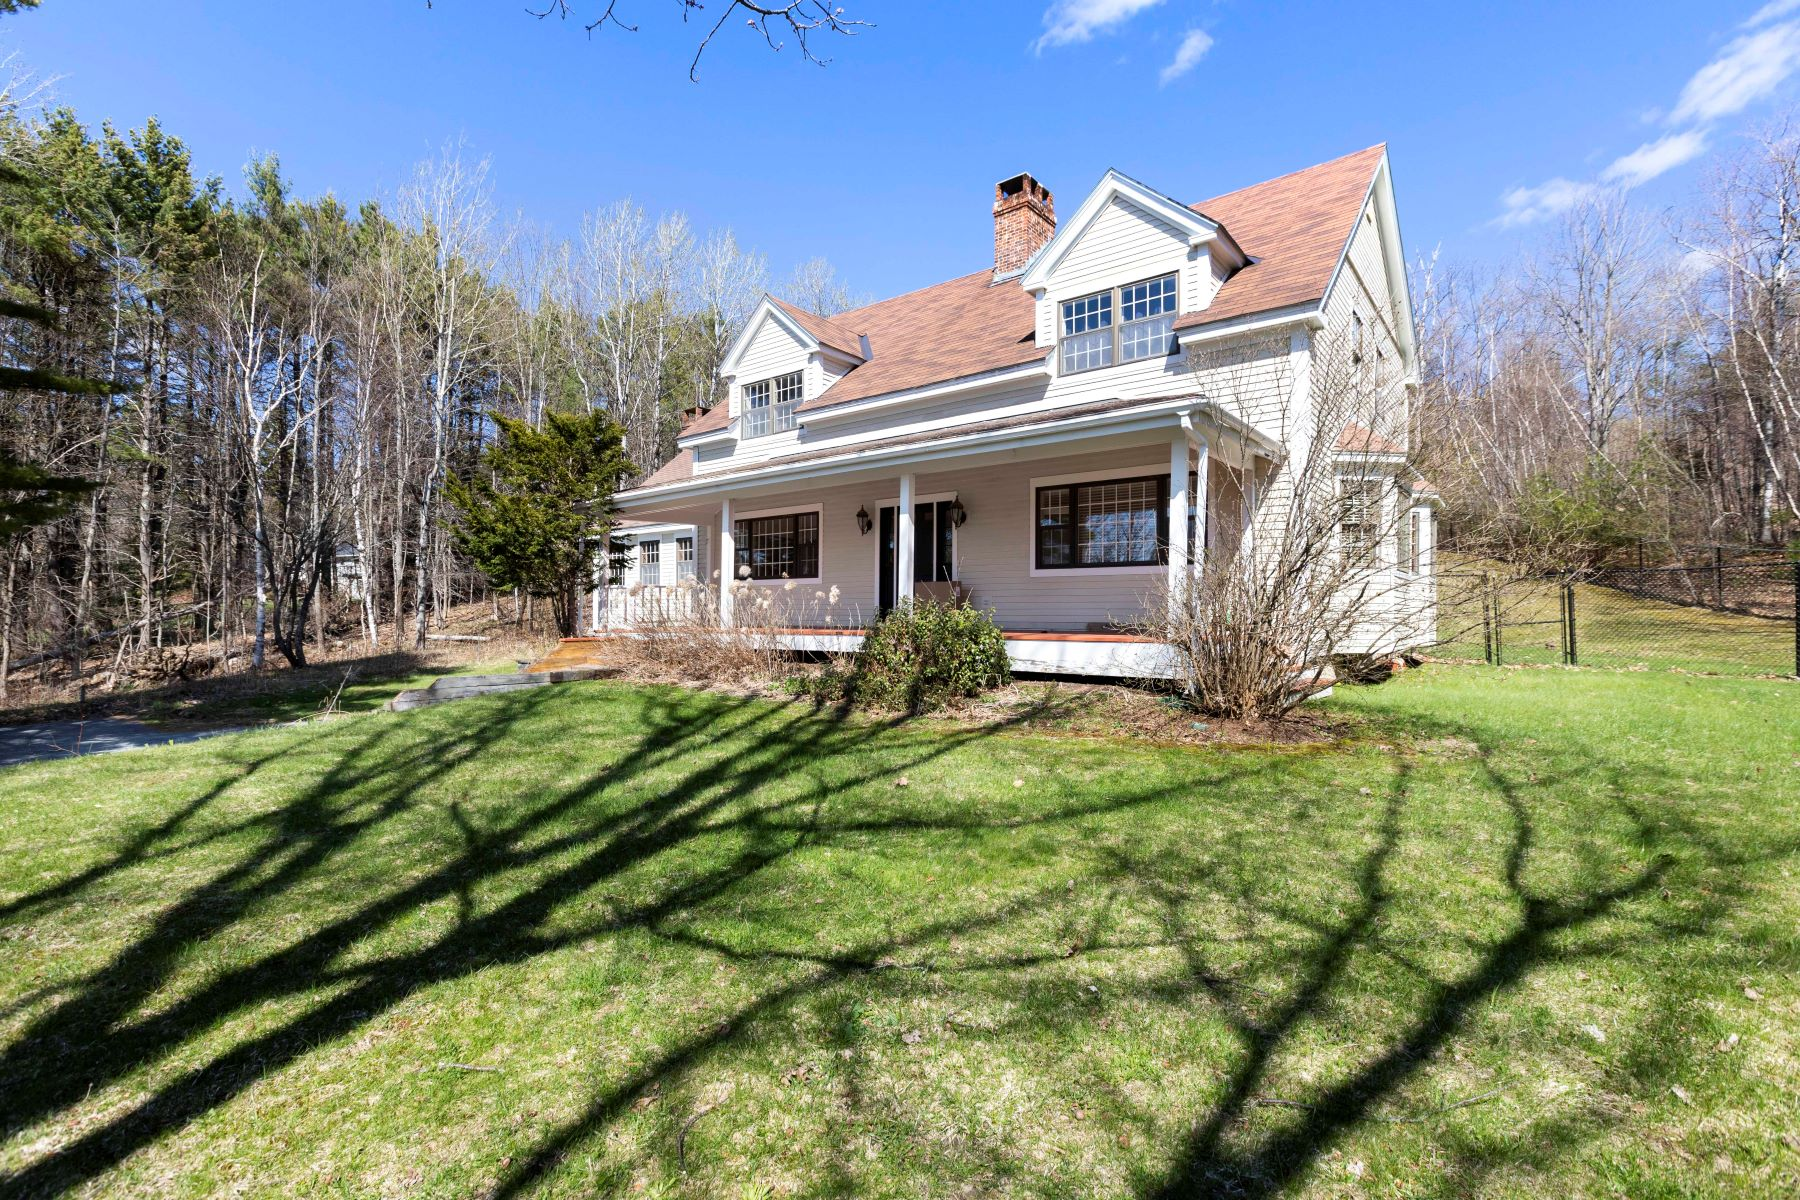 Single Family Homes for Active at Quiet Convenience on Blueberry Hill 60 Westview Lane Lebanon, New Hampshire 03766 United States